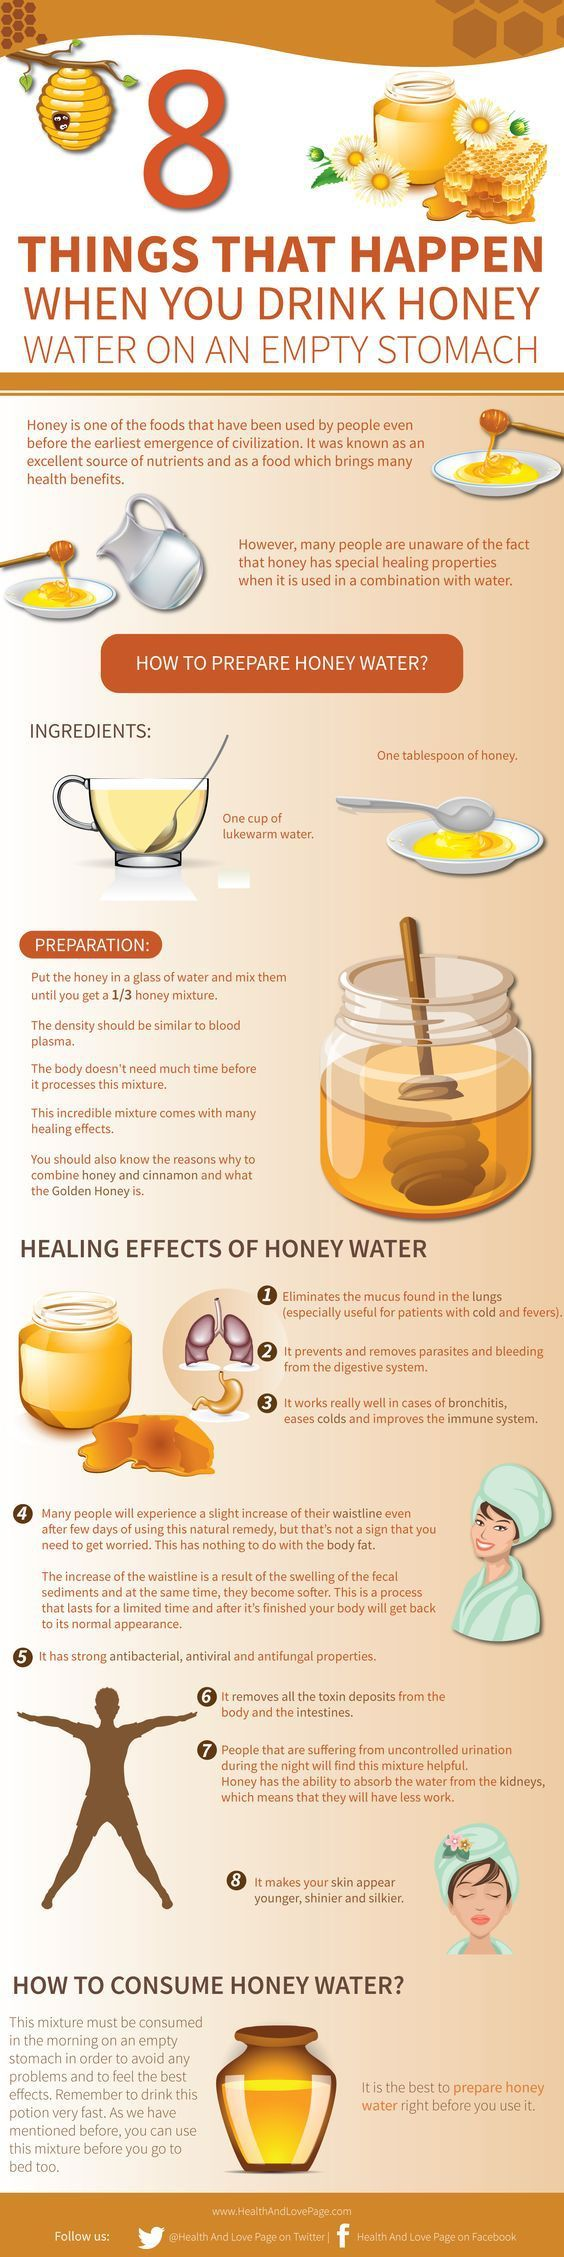 Things that happen when you drink honey water on an empty stomach Worth a try!